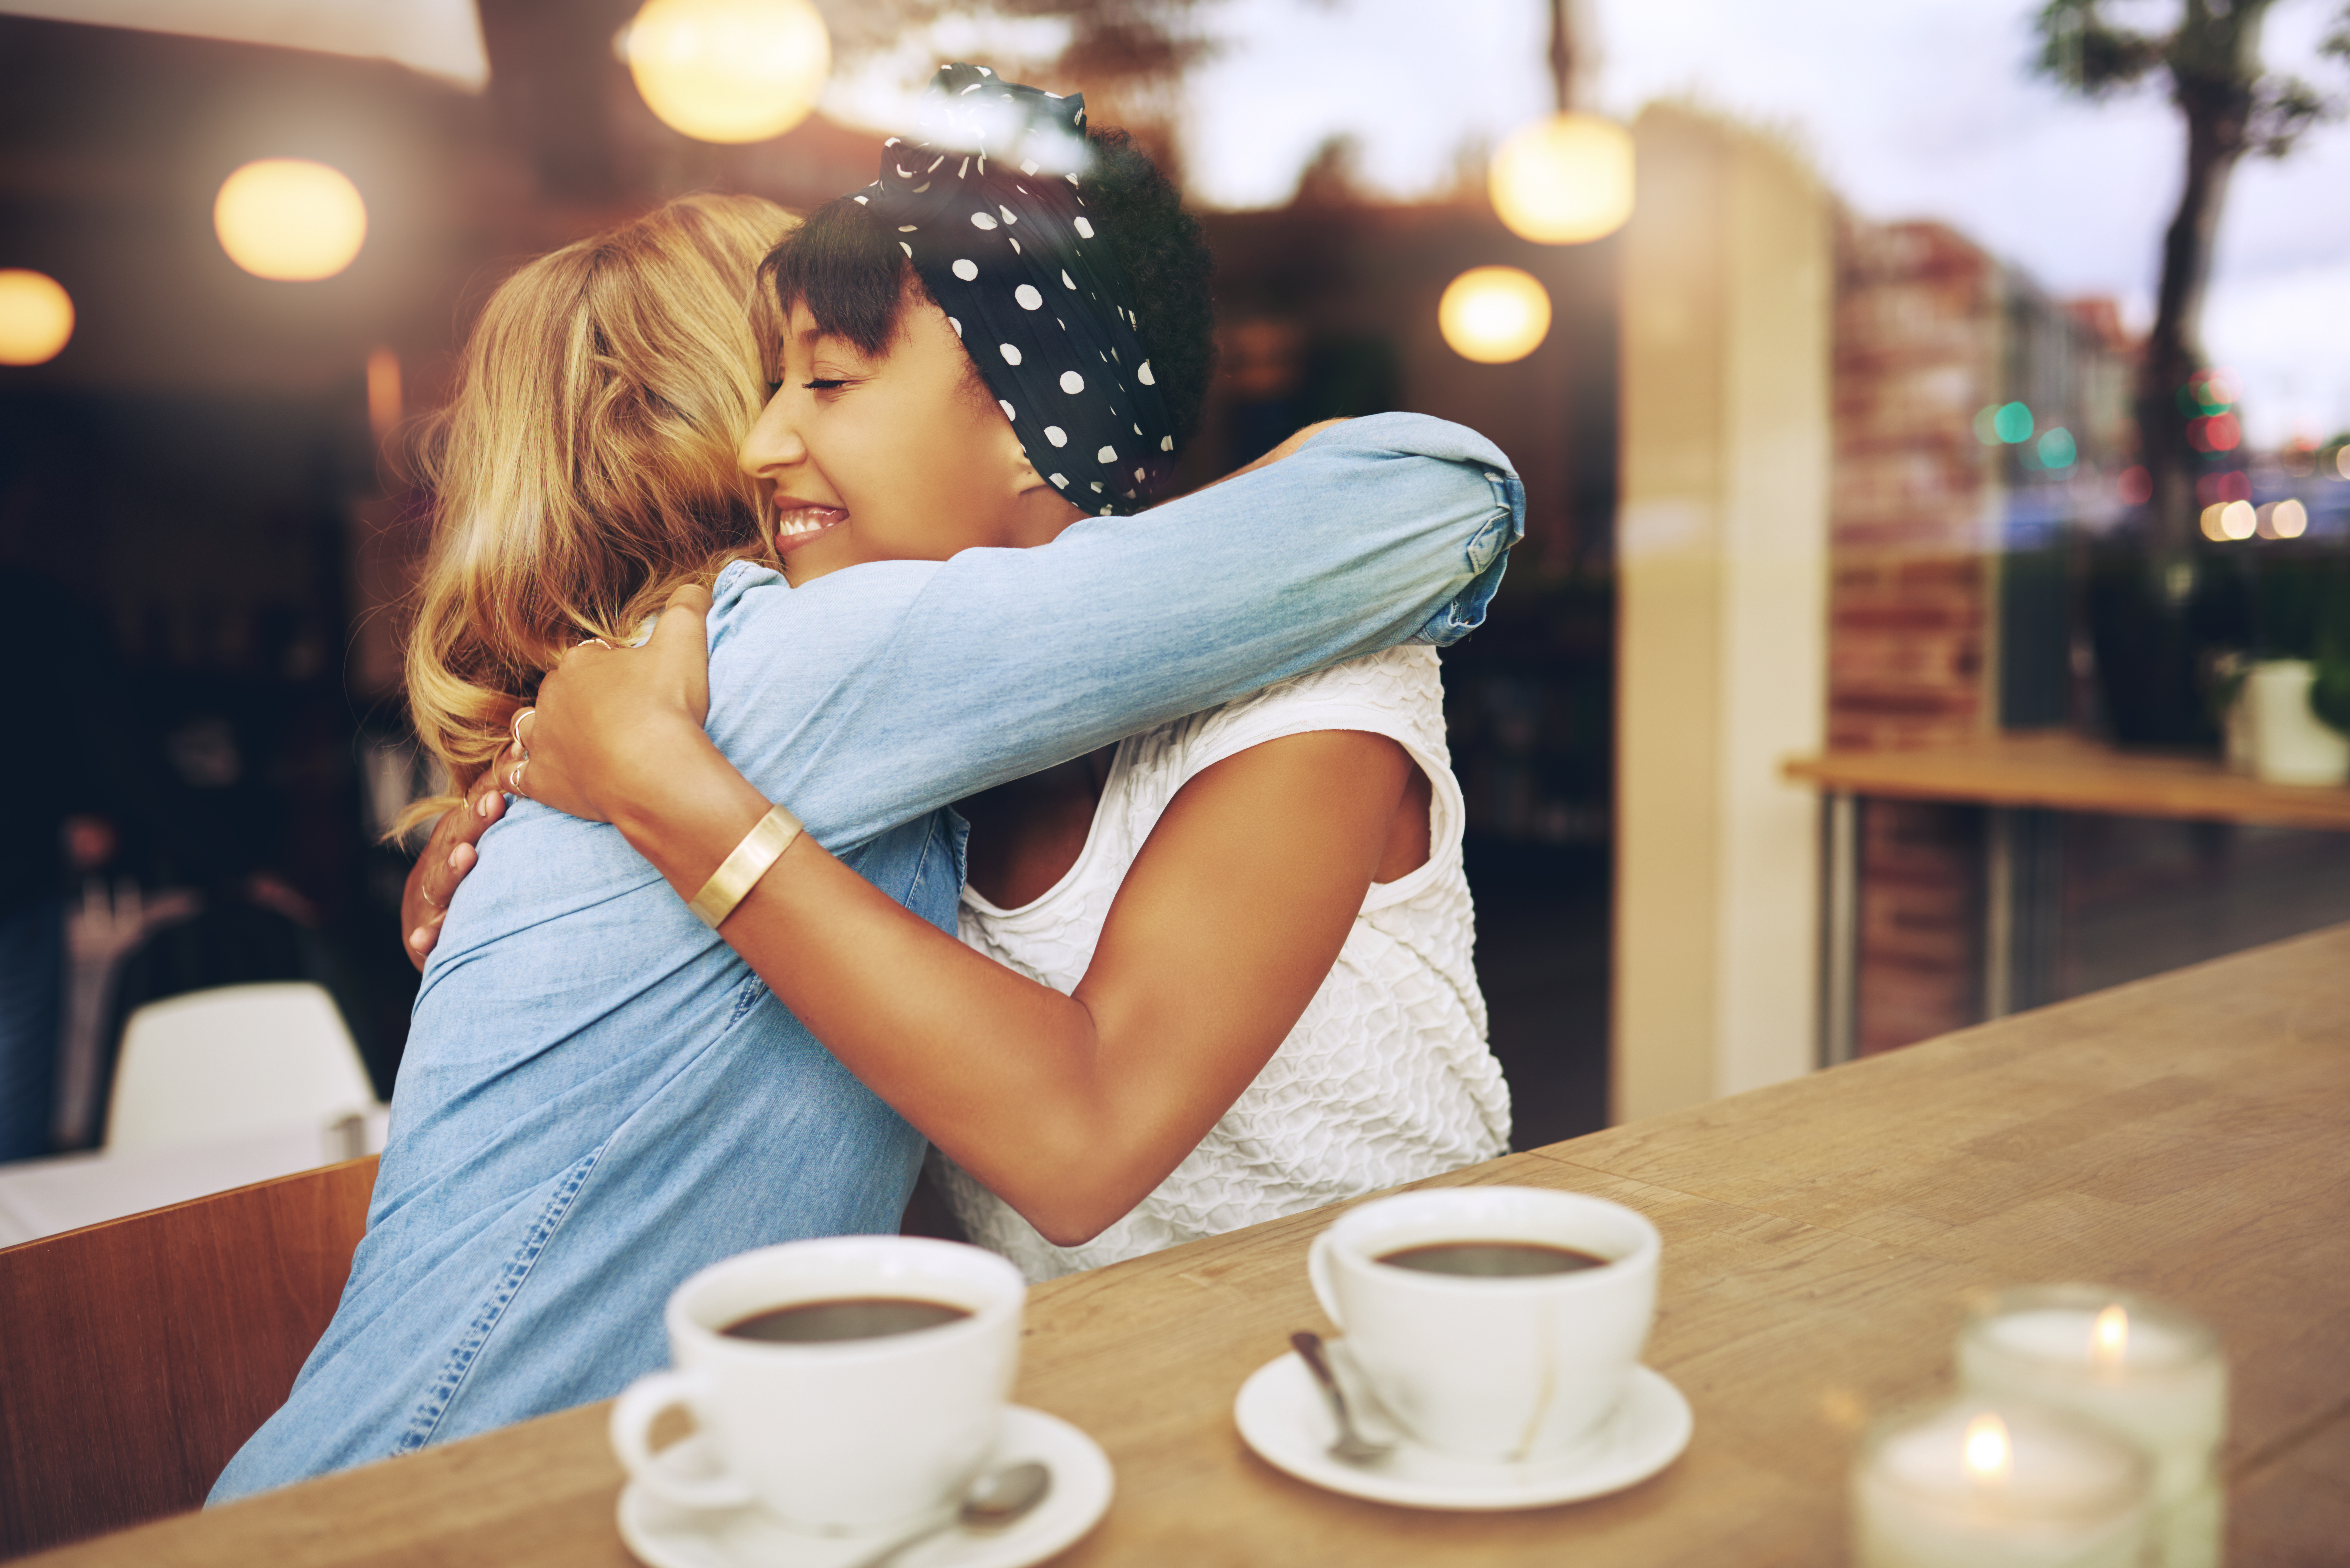 8 Ways To Make More Time for Your Friends